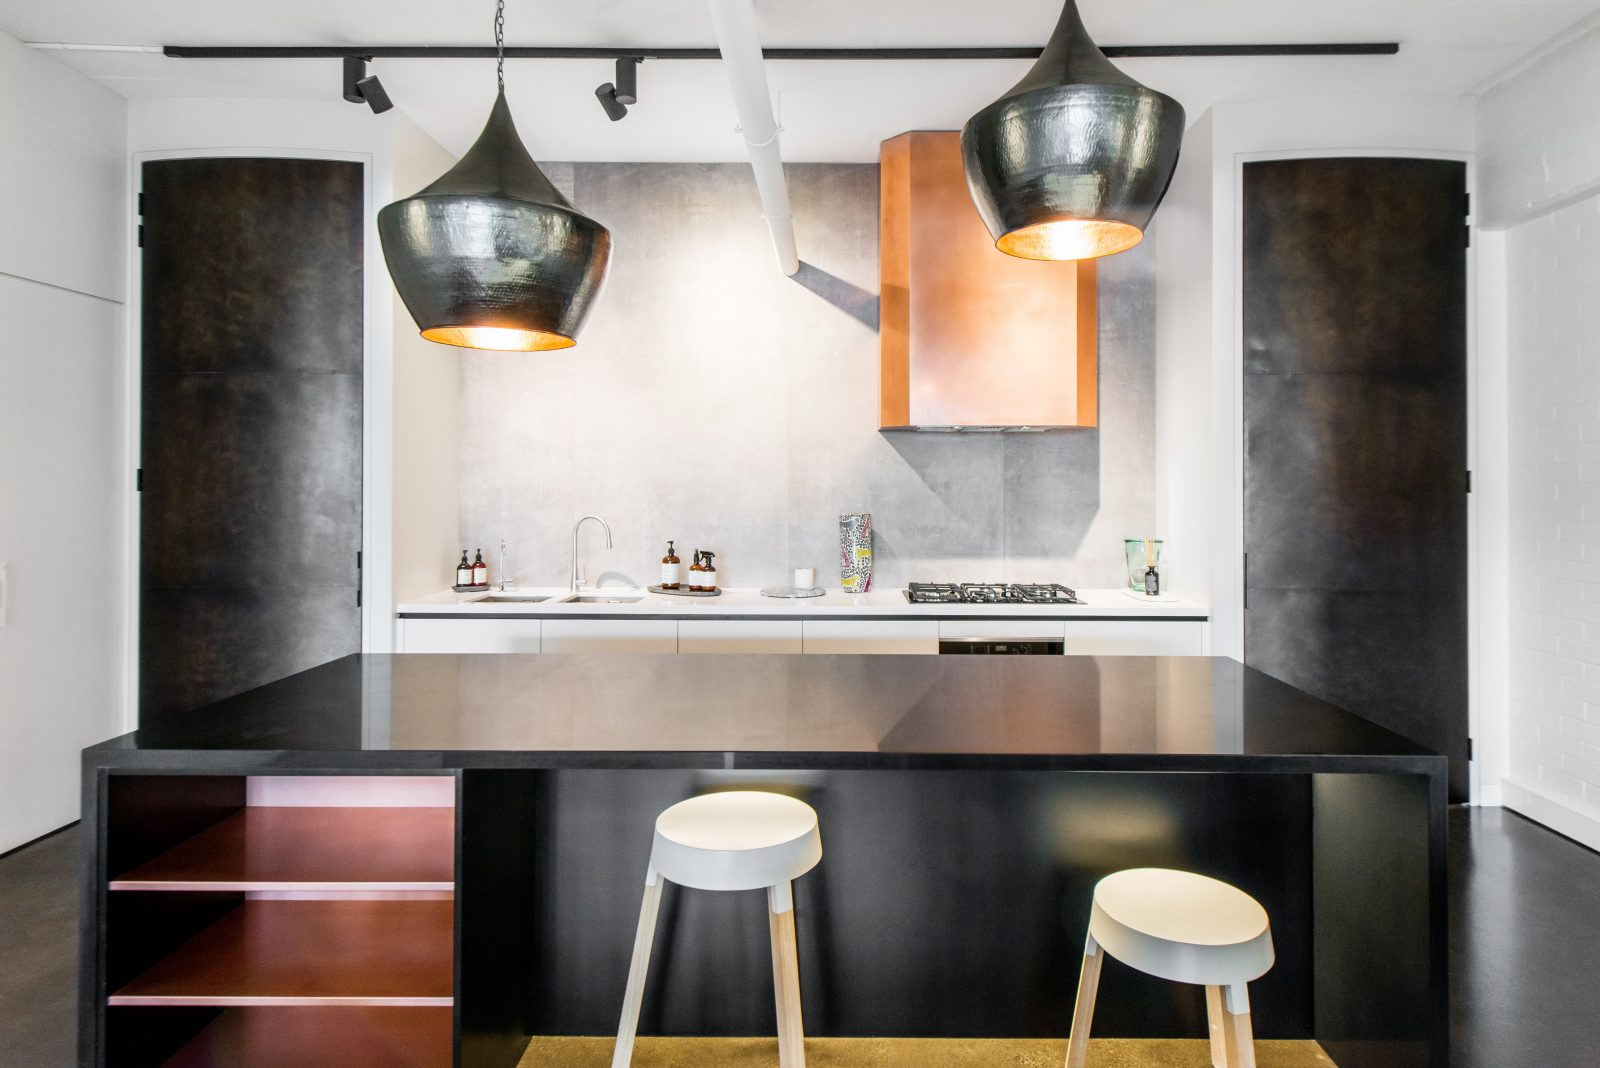 Airbnb Melbourne